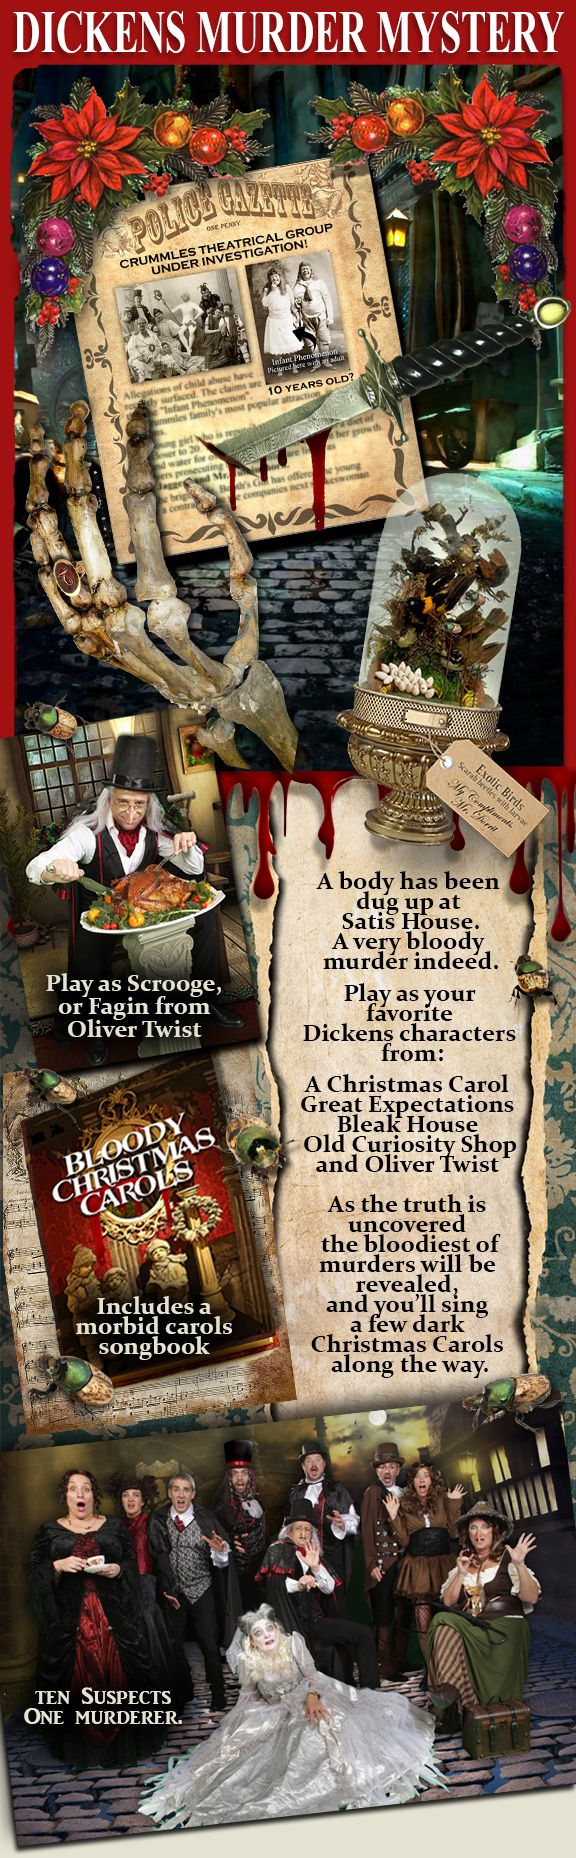 This is a wonderfully dark / humorous role playing dinner party game. Play as one of Charles Dickens most beloved characters as you unravel the mysterious murder at Sadis Manor all the while proclaiming your innocence! A Christmas Eve like no other, as you discover the horrors of each of the dinner guests, and their alibis. Along with a few morbid Christmas Carols, this is one evening you wont soon forget! Game for 10 players.